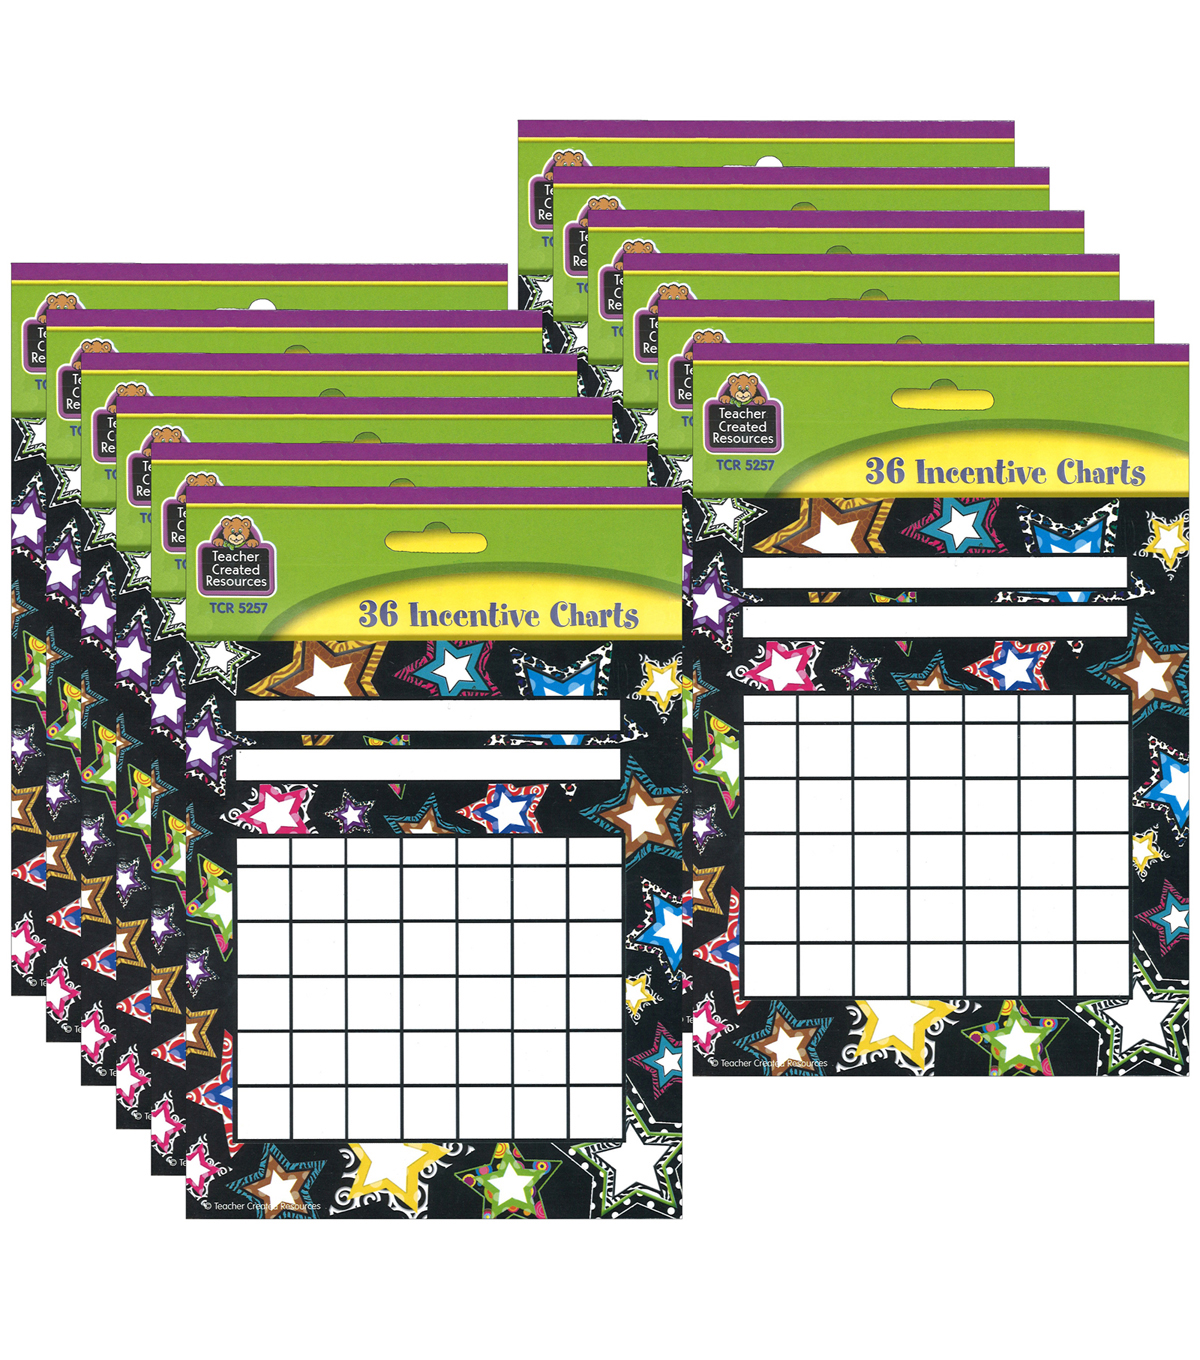 Fancy Stars Incentive Charts, 36 Per Pack, 12 Packs